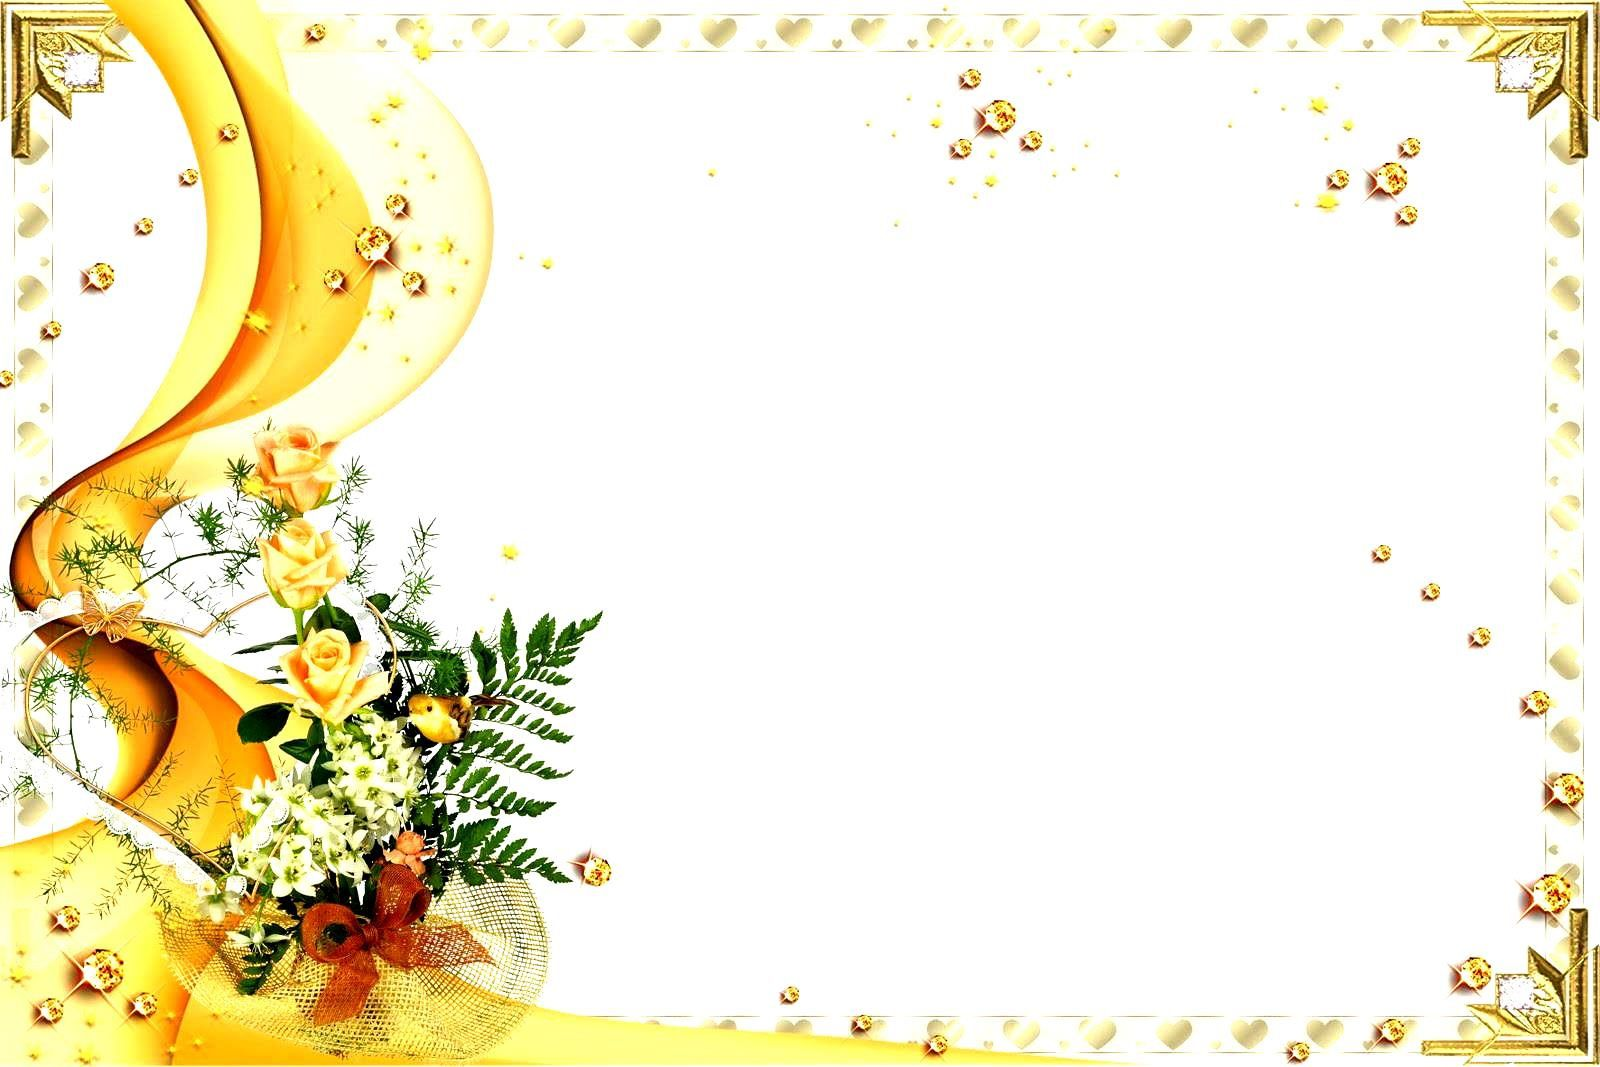 007 Unique Free Invitation Template Word Image  Wedding For Tamil Christma PartyFull